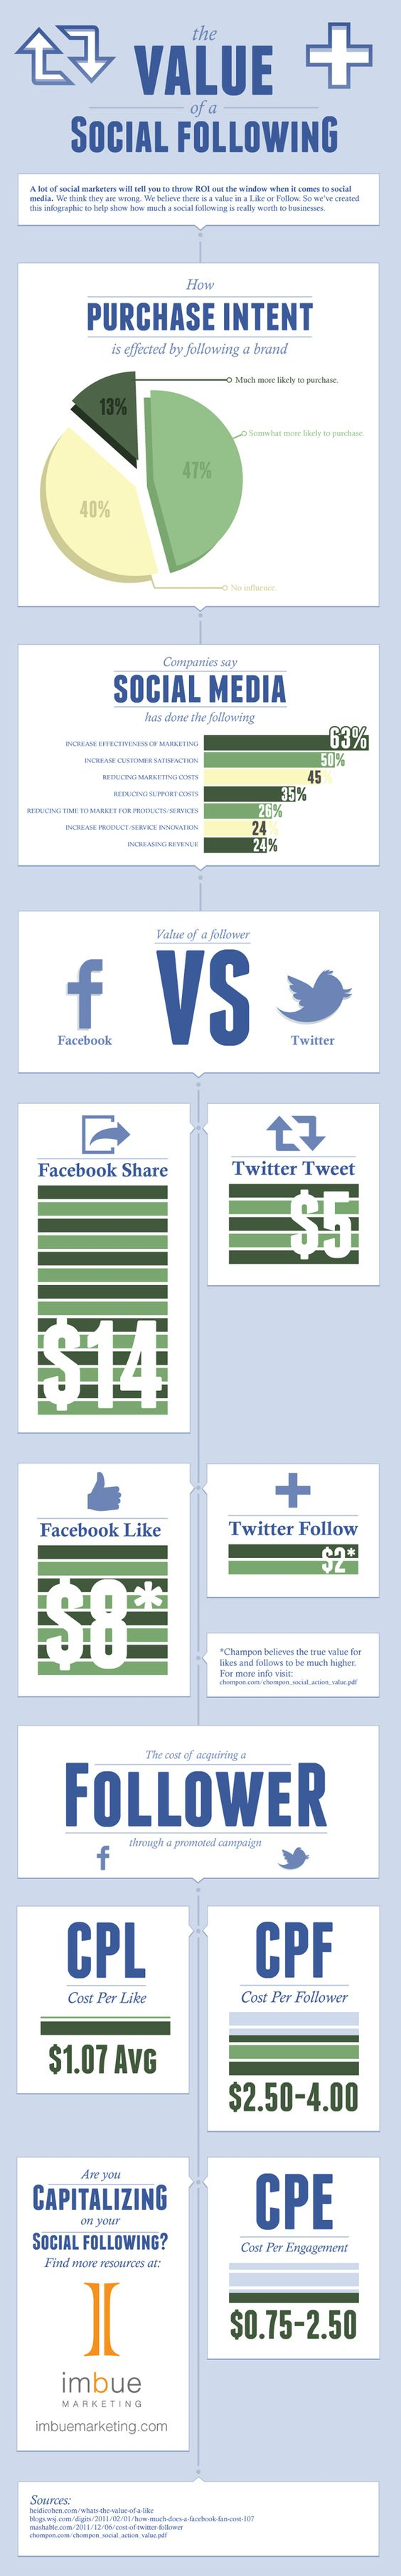 What's a Facebook Like, Twitter Follower Worth to Brands?